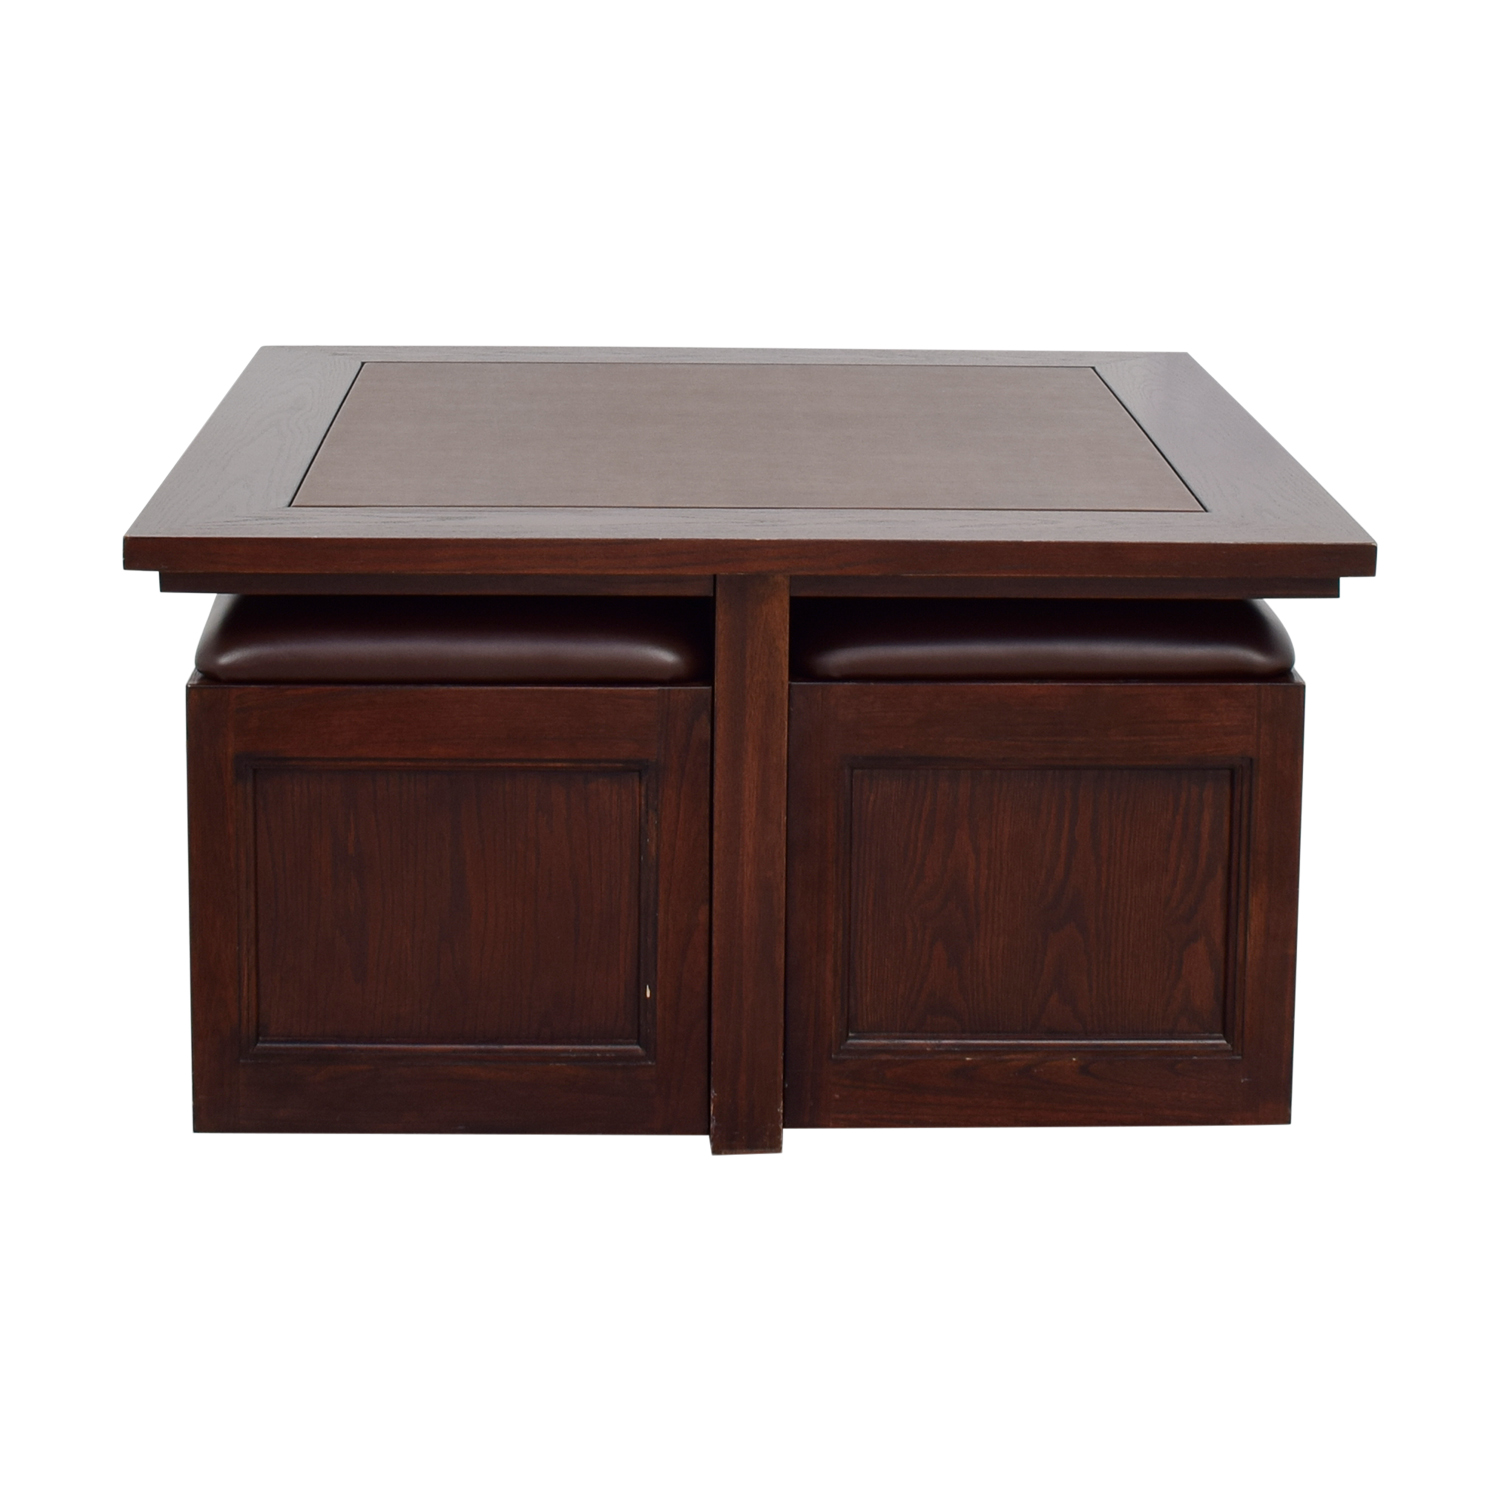 Macy's Macy's Cherry Wood Square Coffee Table with Seat Storage price